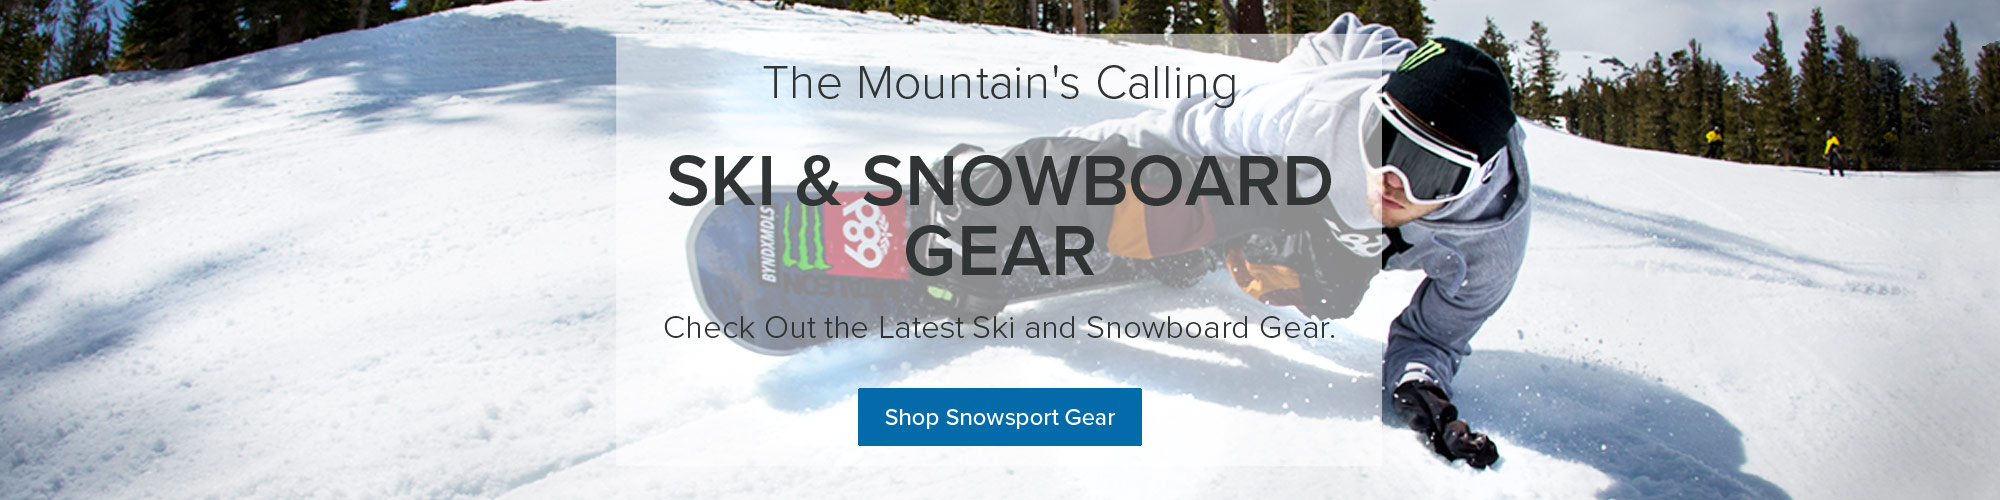 Latest - Ski - Sbowboard Gear - Snowsport - Shop Now